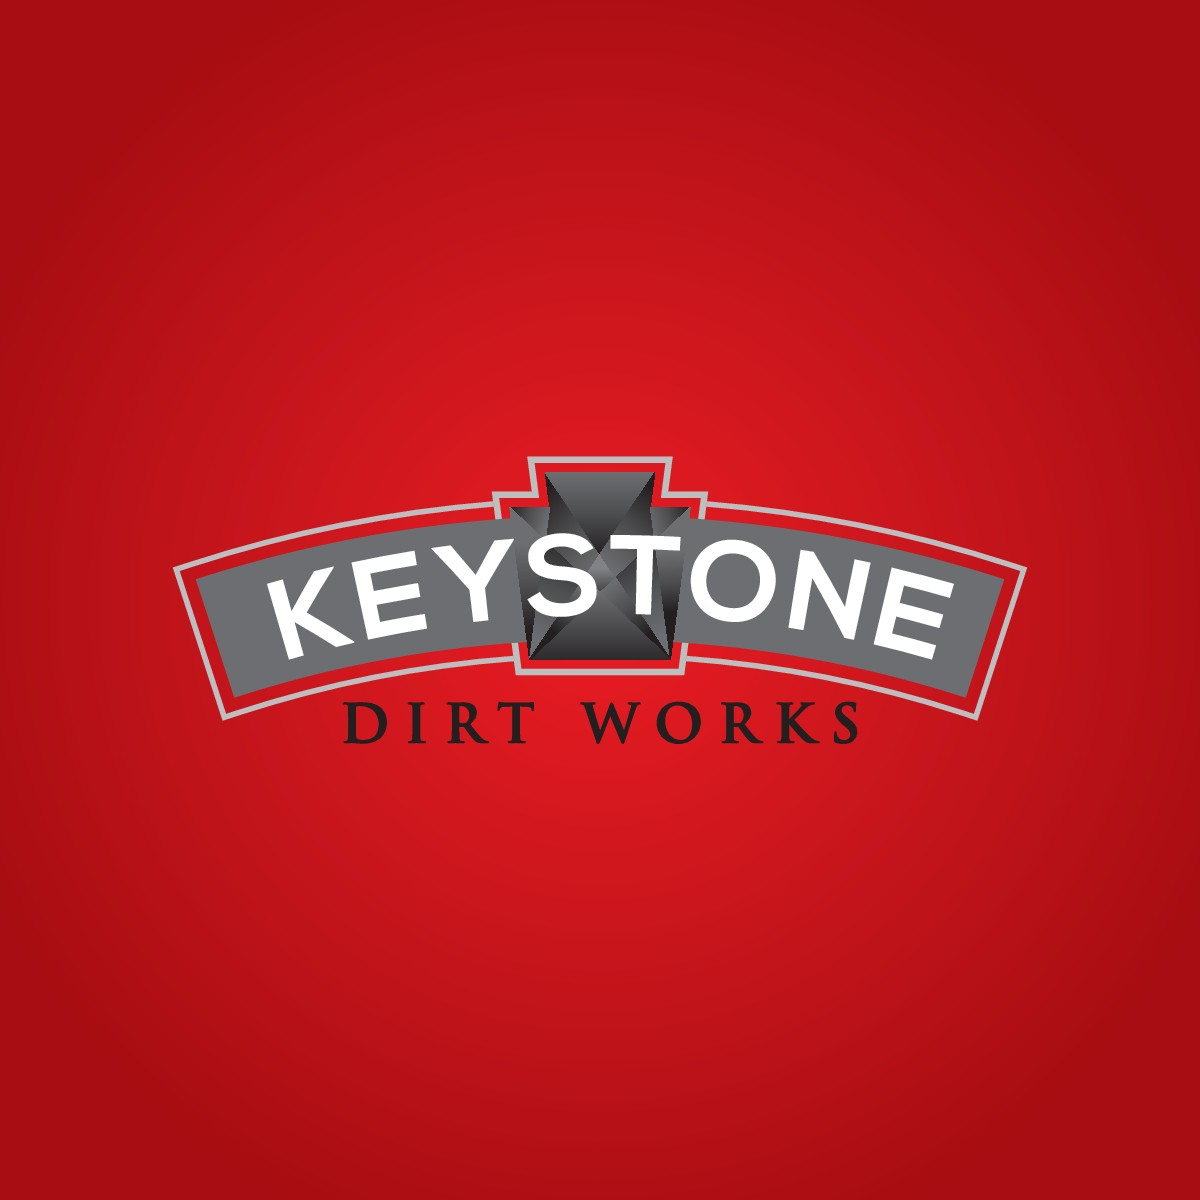 Create a simple but effective logo for a upscale excavation contractor